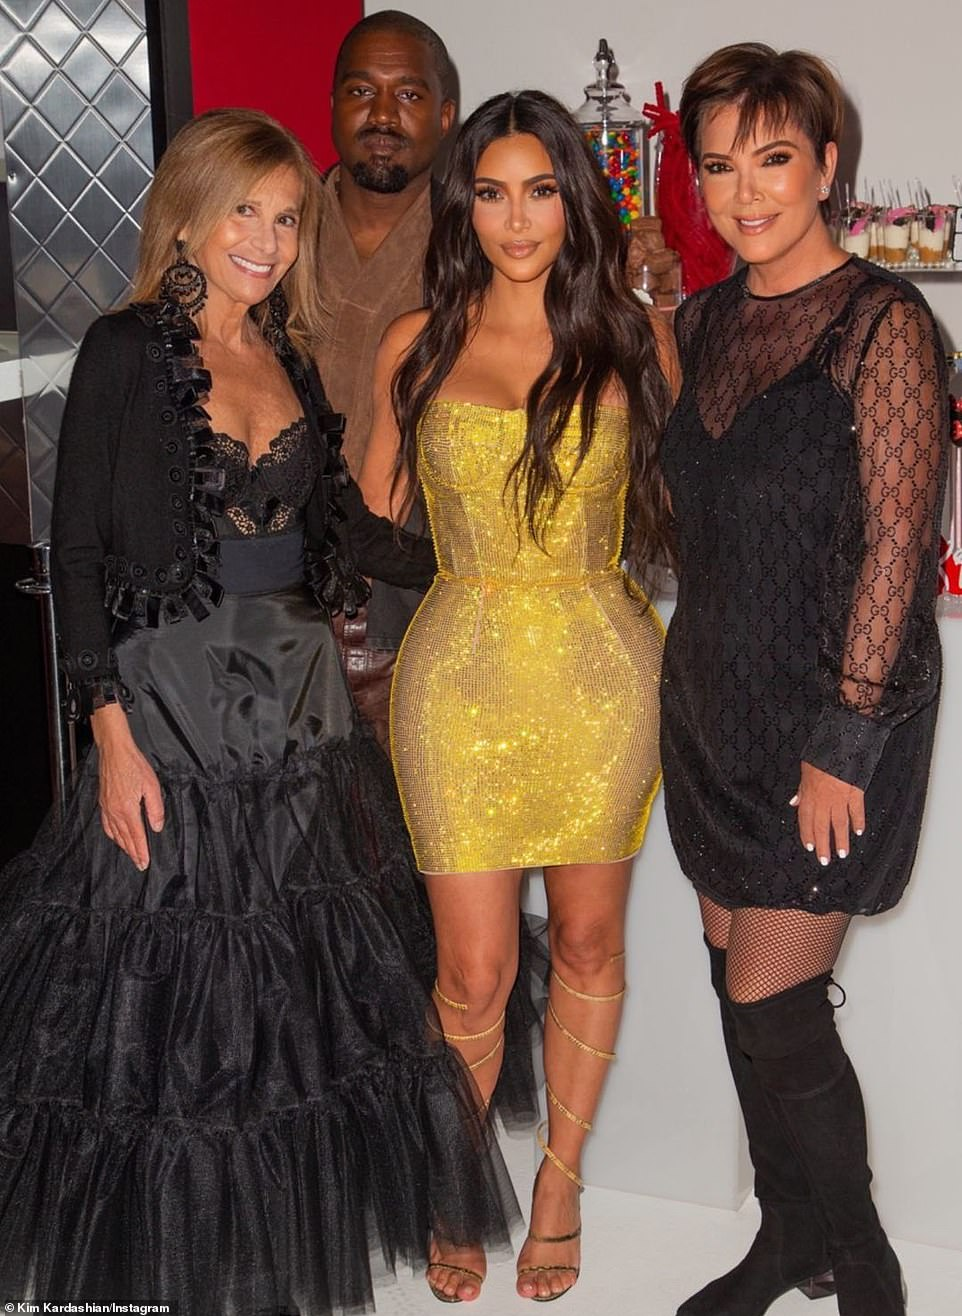 Her loves ones: Also seen were her husband Kanye West, mom Kris Jenner, andthe first cousin of her late father Robert Kardashian, Cici (far left)